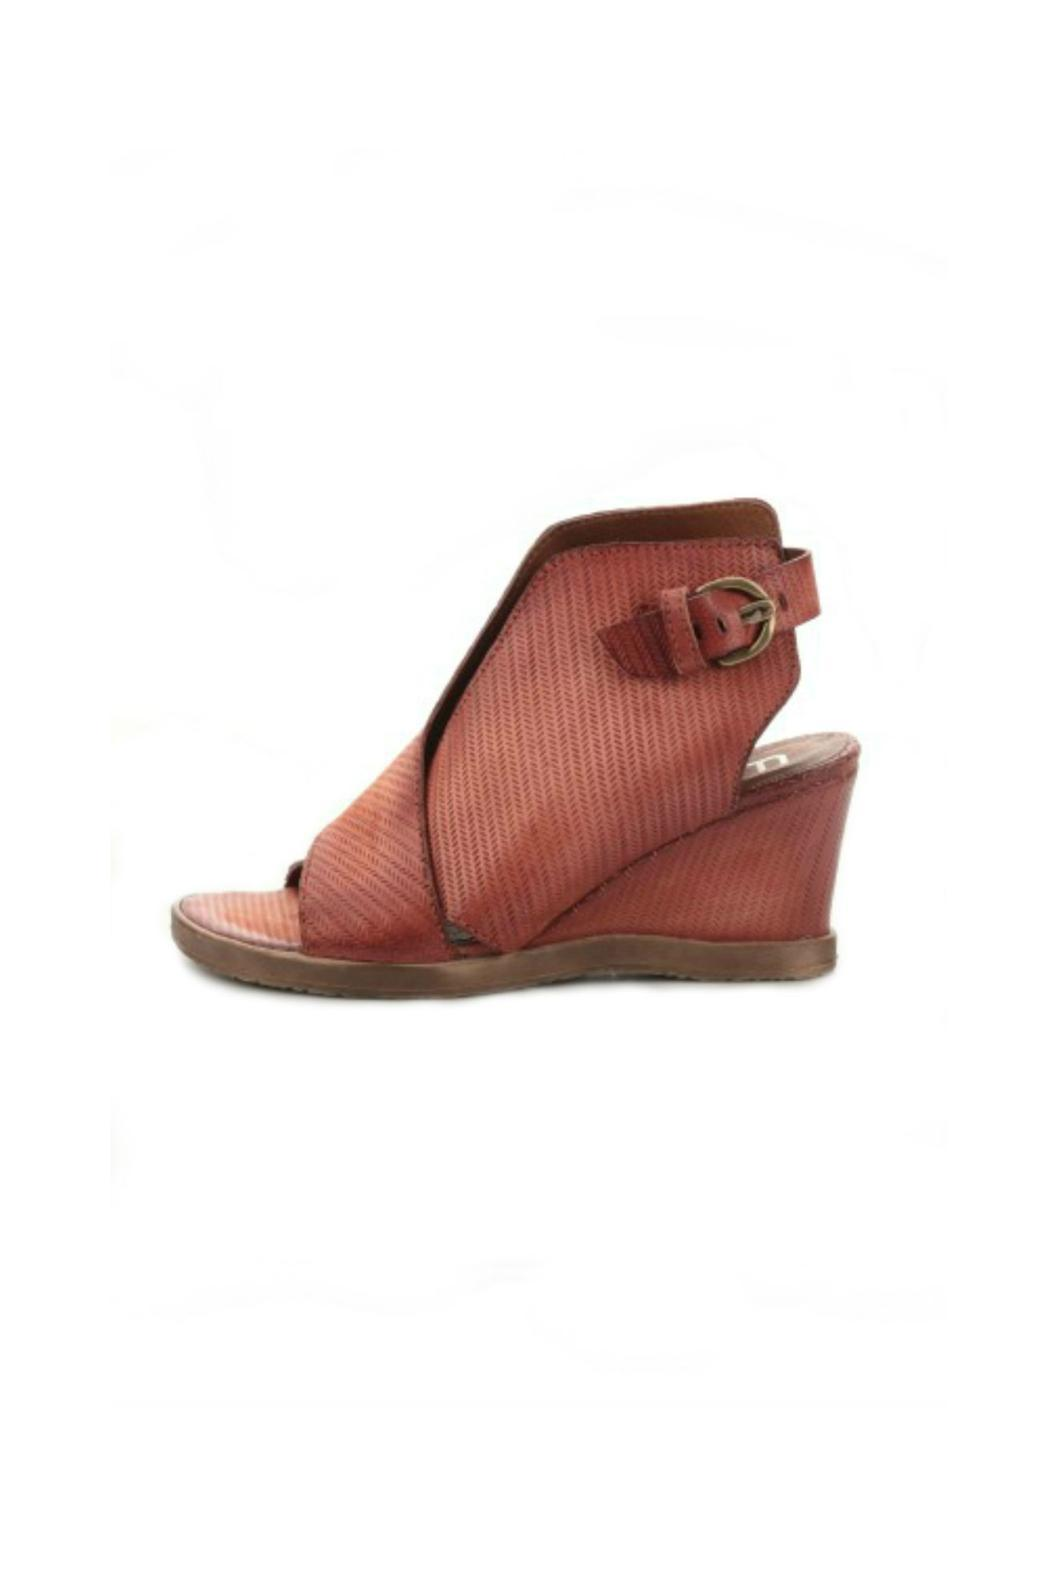 From Leather Wedge Labelle Sandal Canada By Shoptiques — Mjus 54LARj3